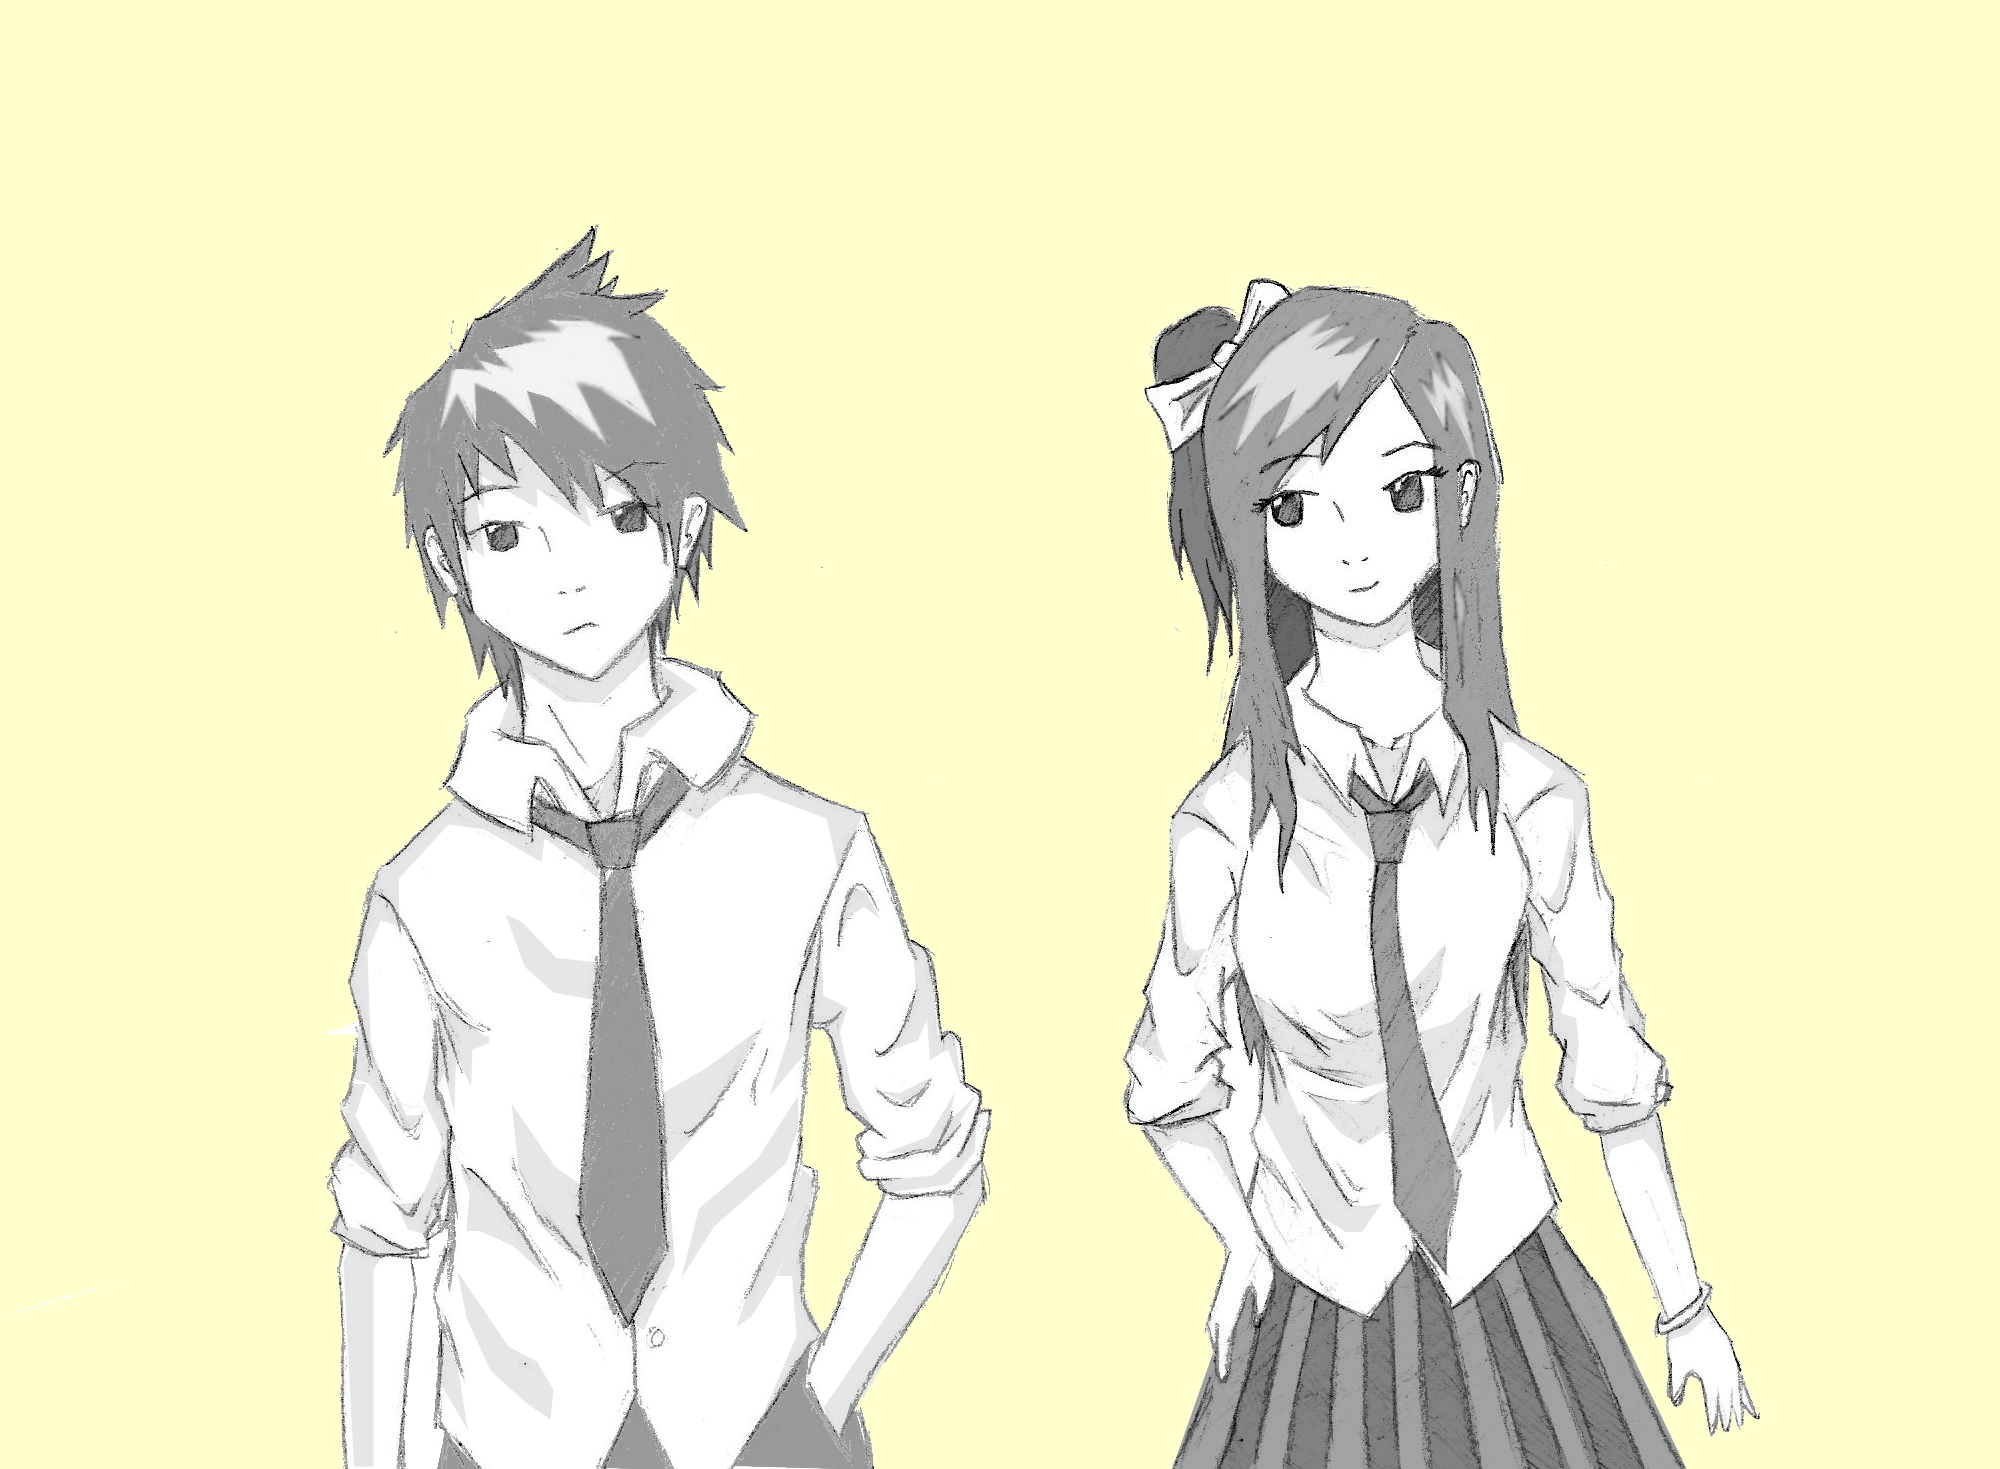 2000x1469 Boy And Girl Holding Hands Anime Sketch Boy And Girl Holding Hands